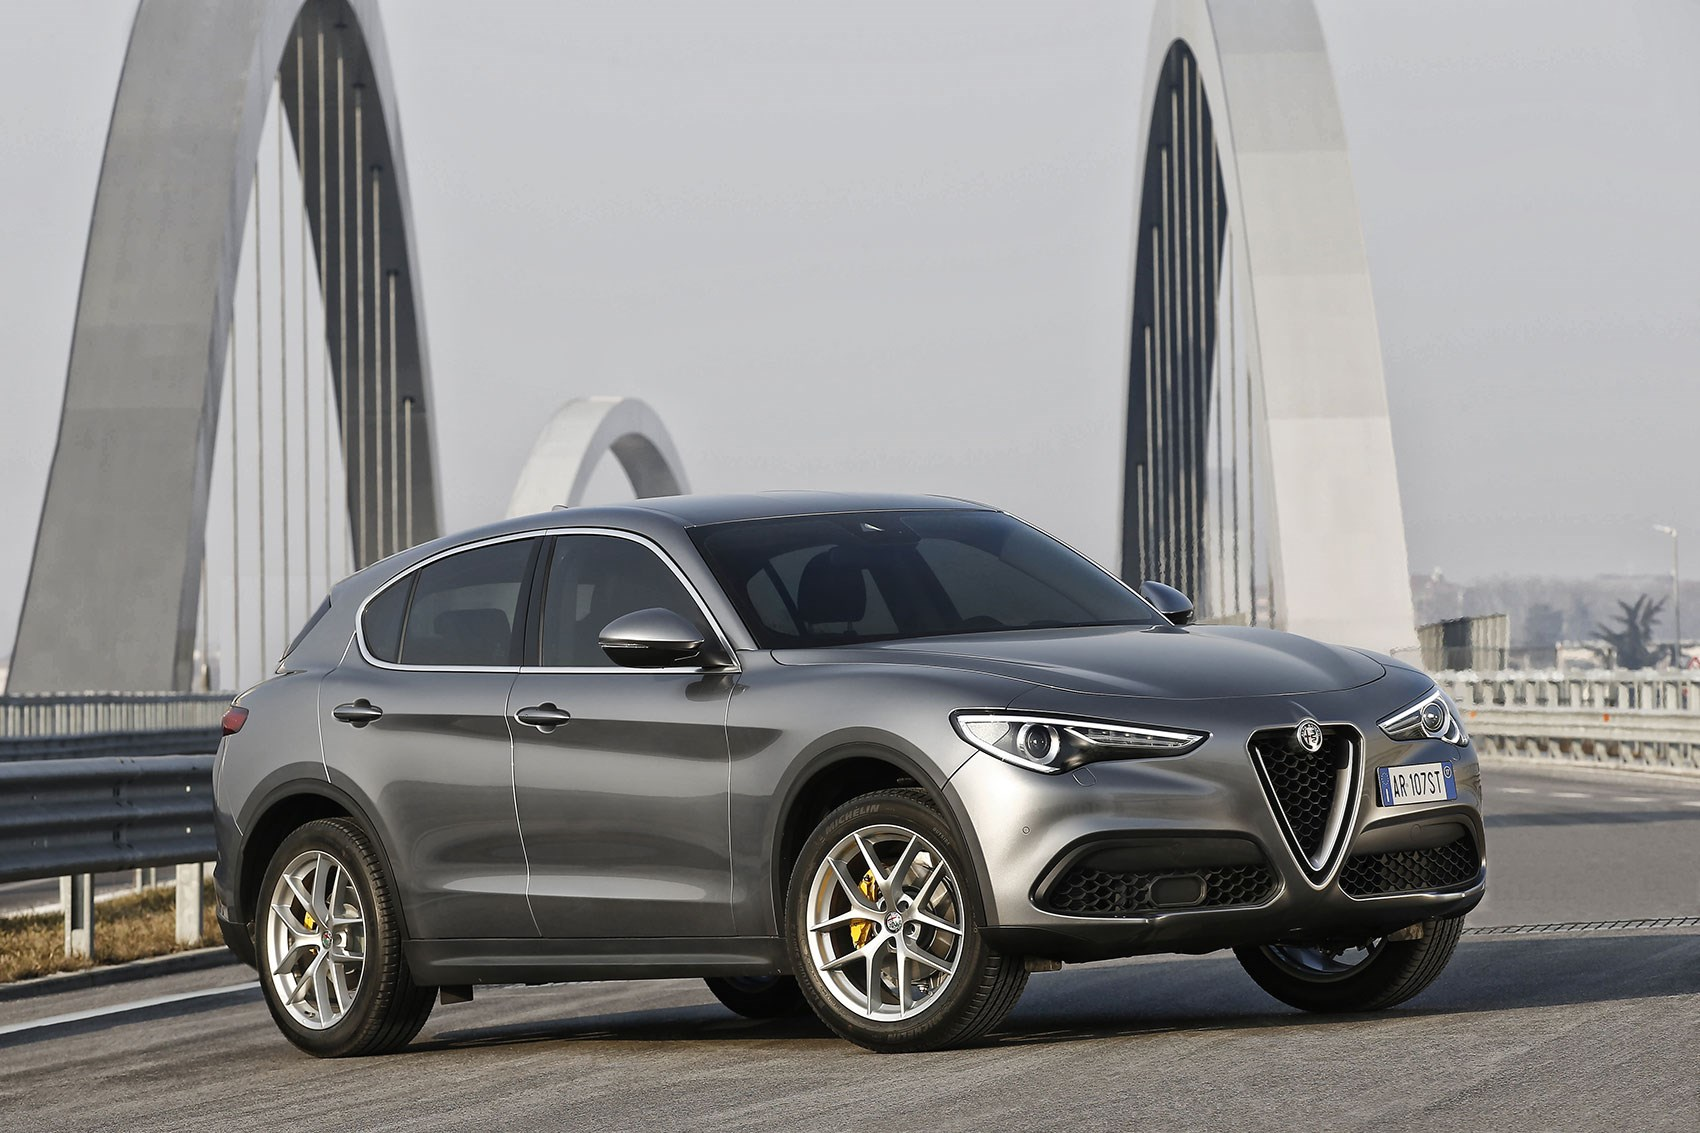 alfa romeo stelvio 2017 review by car magazine. Black Bedroom Furniture Sets. Home Design Ideas